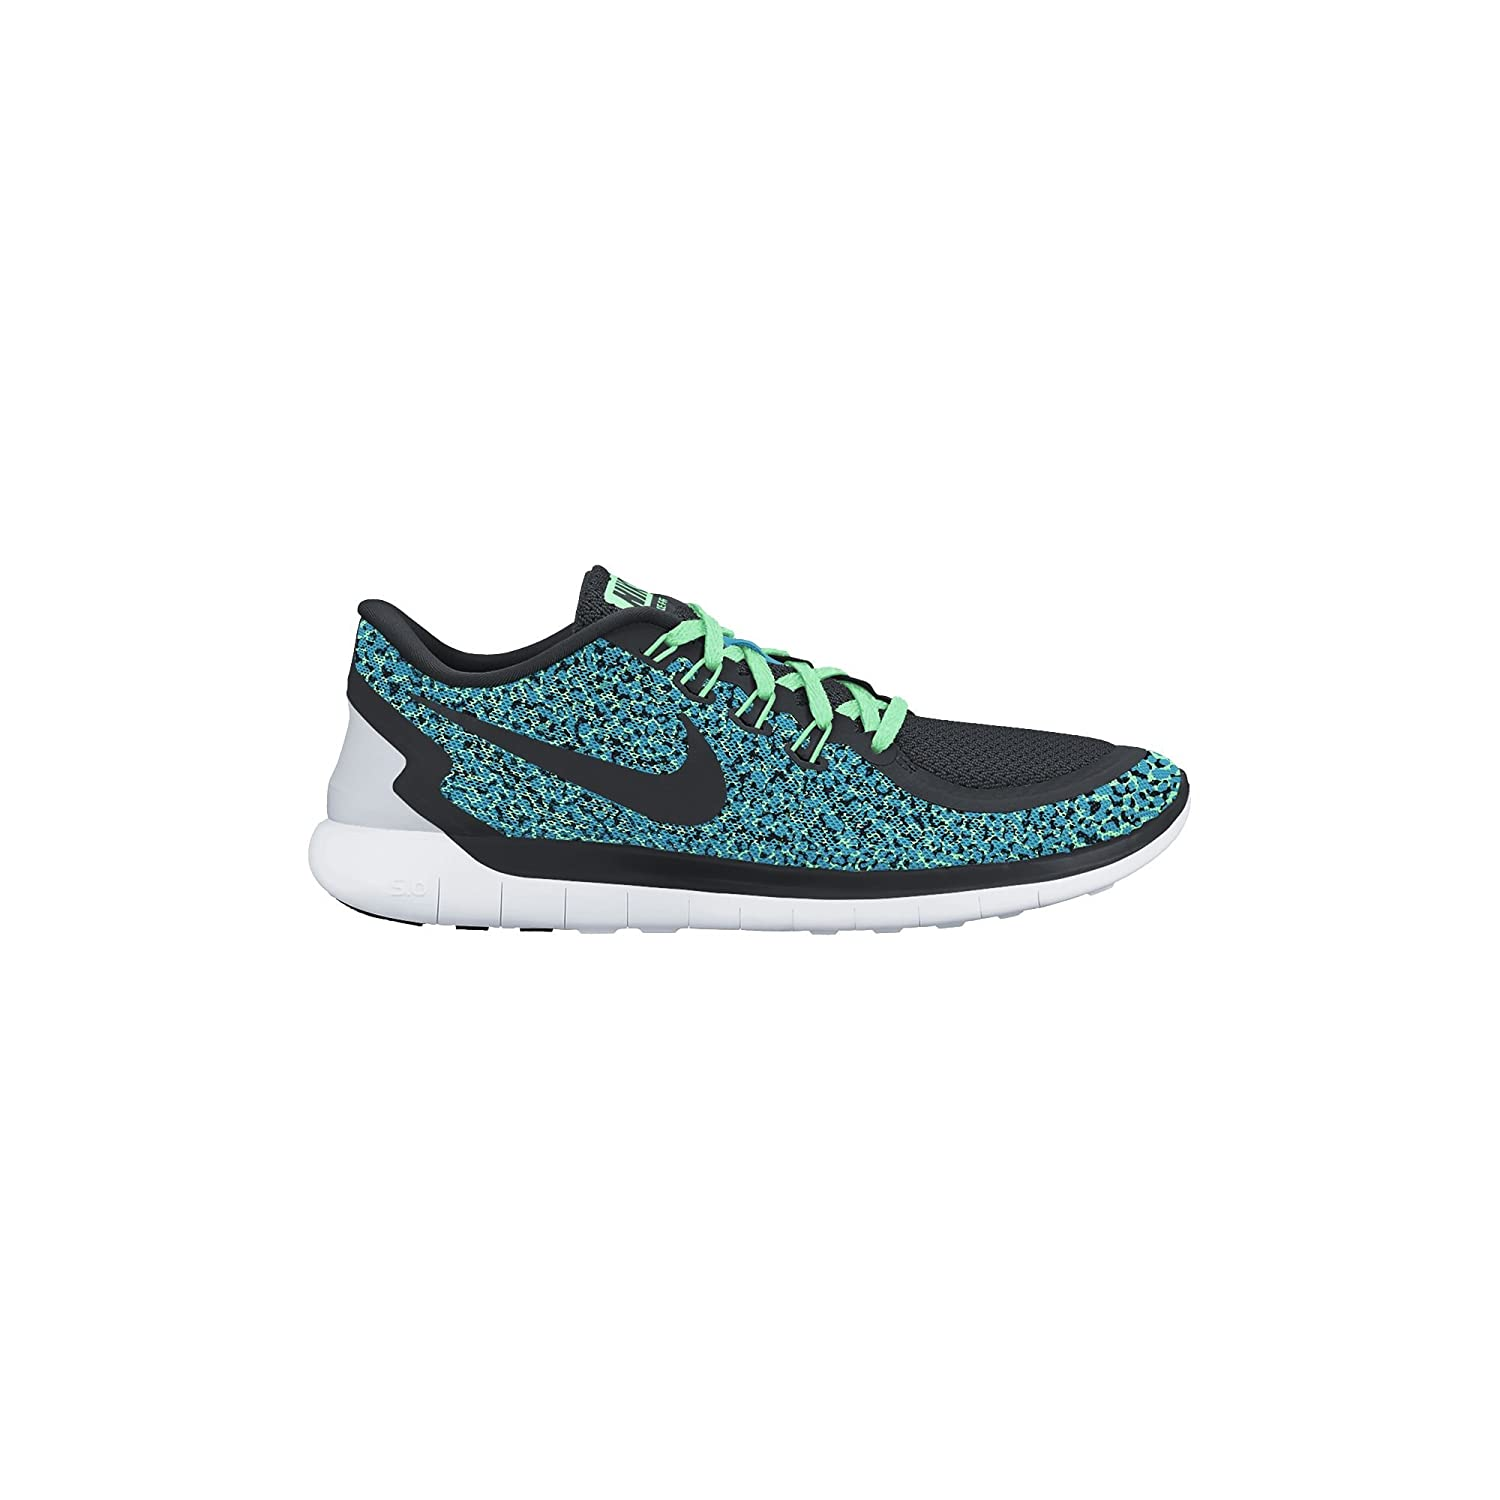 Cheap Women's Nike Free Run 5.0 V3 Shoes Navy BlueFuchsia